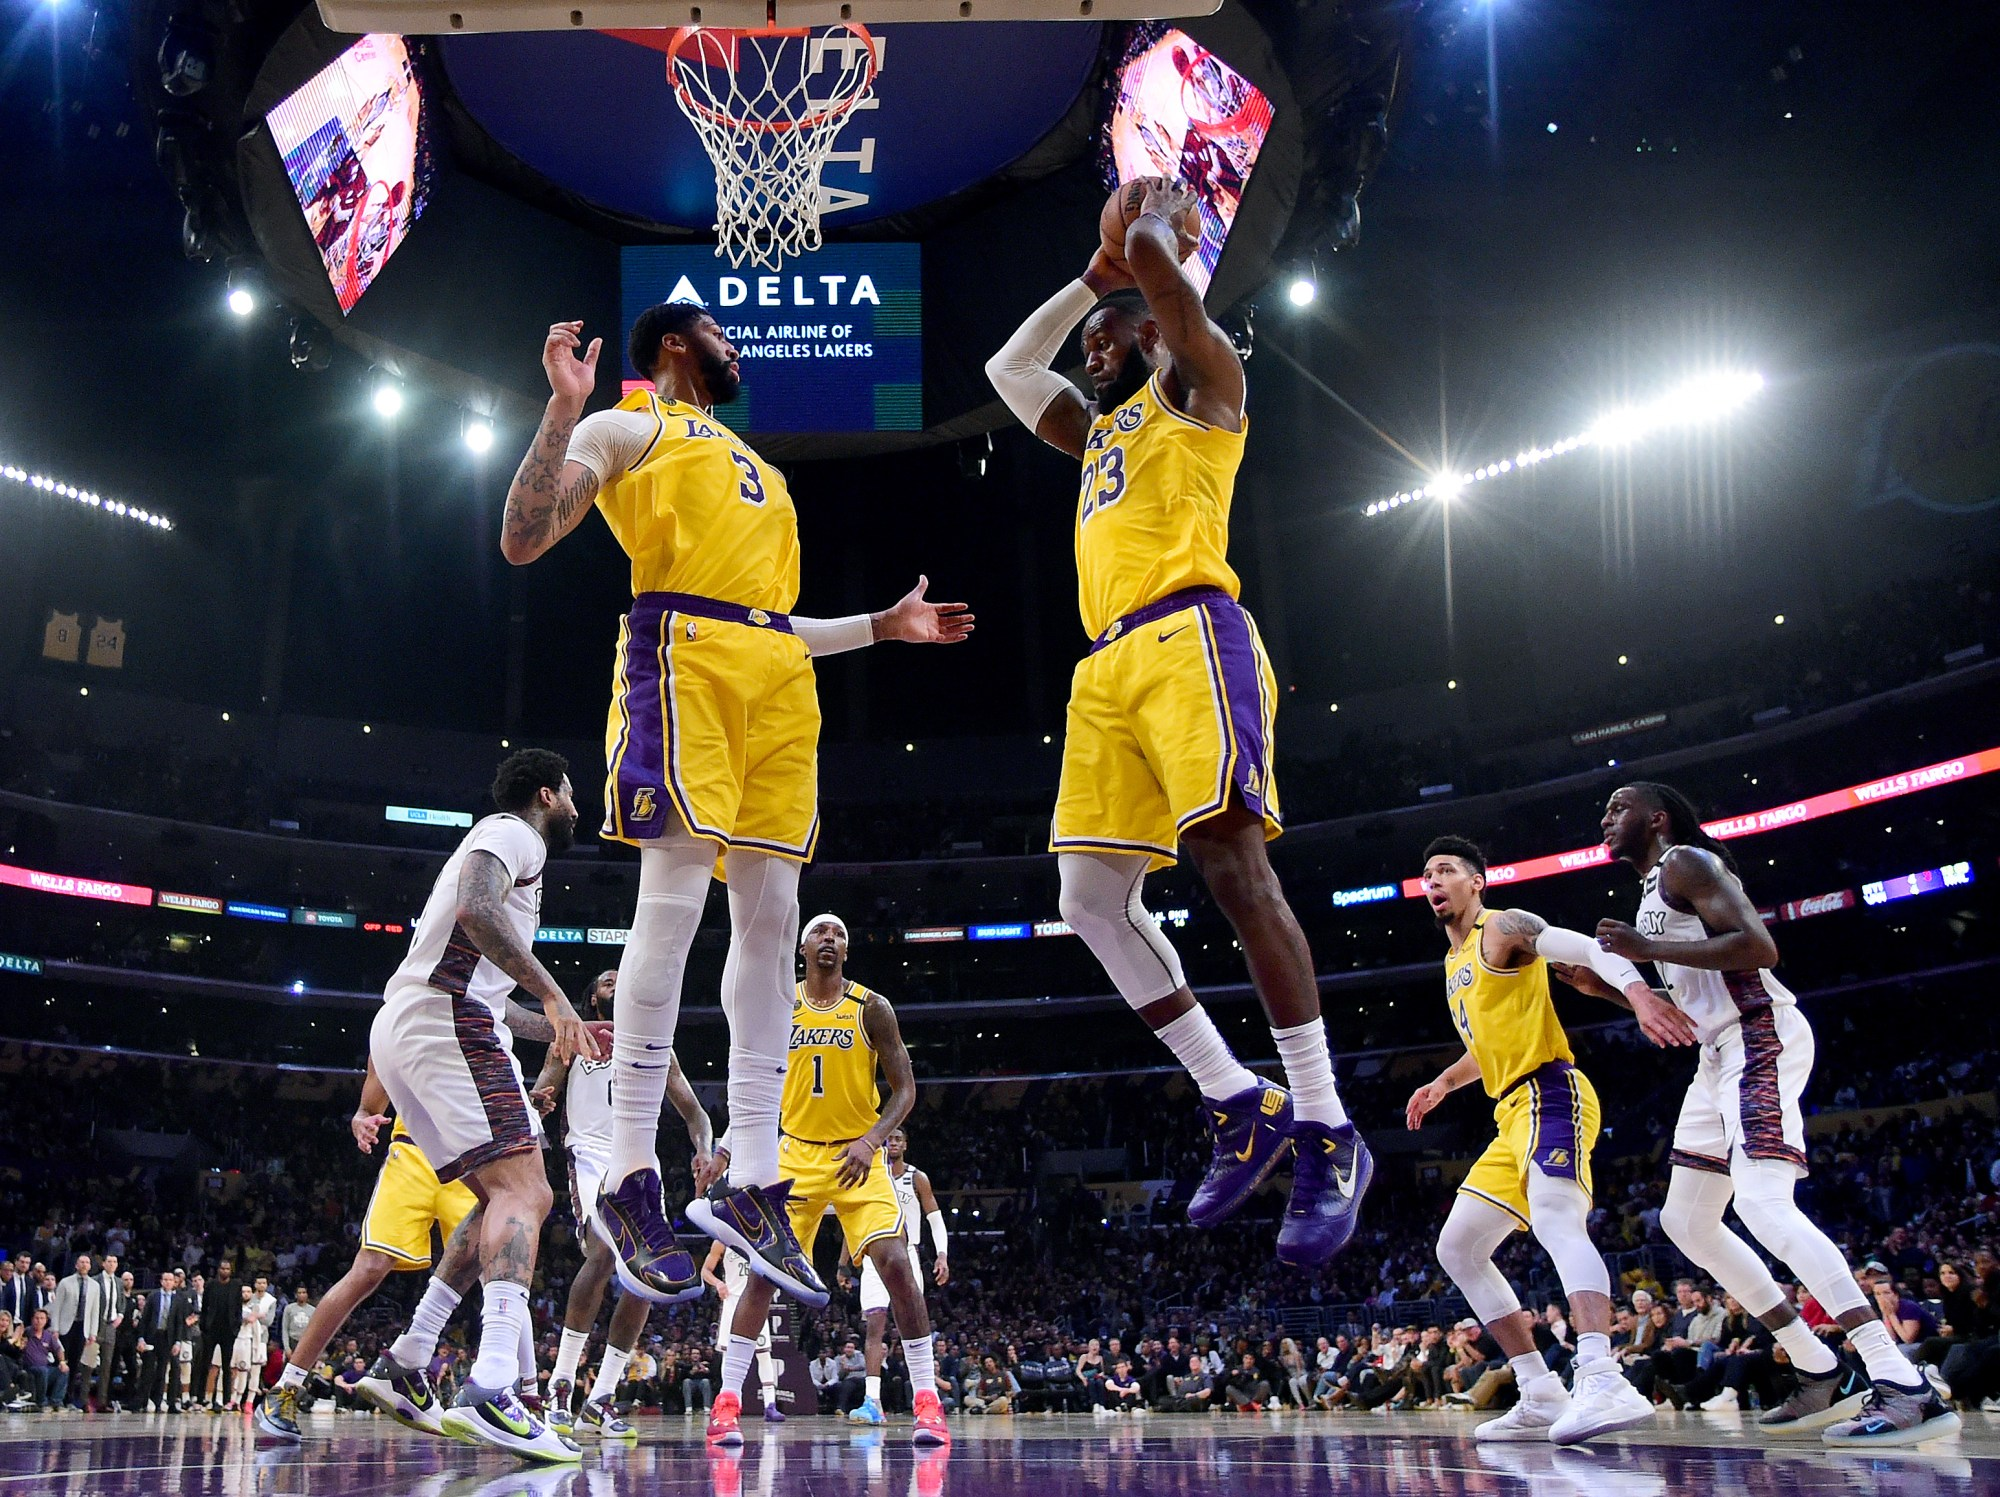 LeBron James #23 of the Los Angeles Lakers grabs a rebound in front of Anthony Davis #3 during a 104-102 loss to the Brooklyn Nets at Staples Center on March 10, 2020 in Los Angeles, California. (Harry How/Getty Images)